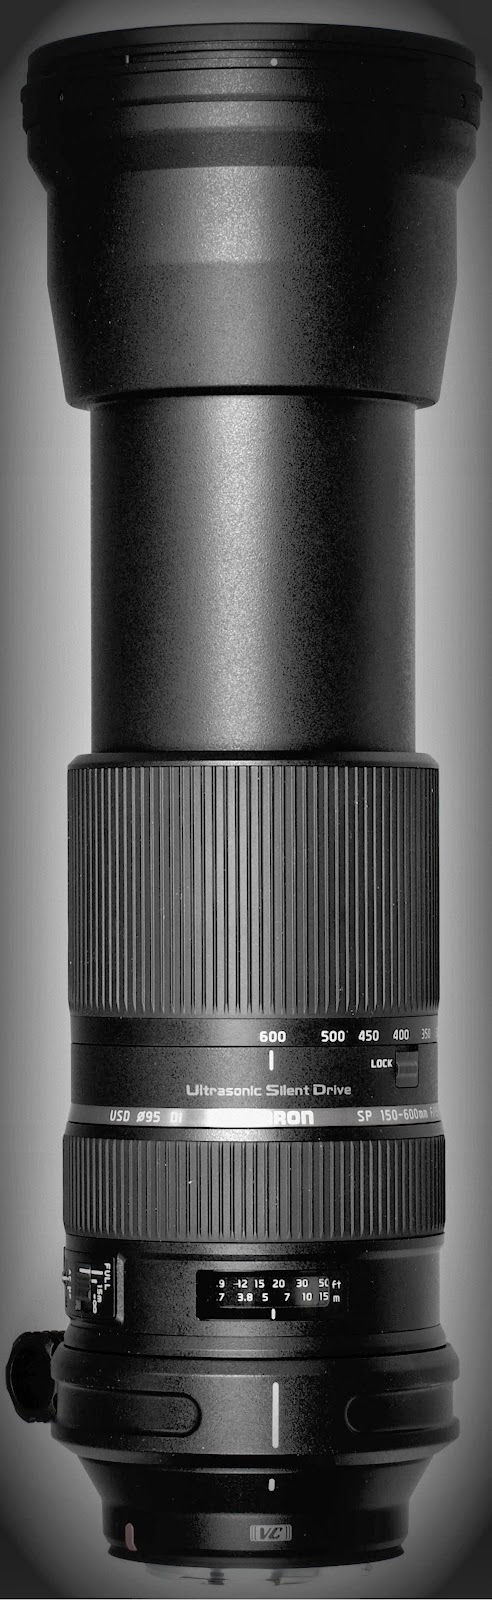 Tamron SP 150-600mm F/5-6.3 Di VC USD. (Manual de uso)